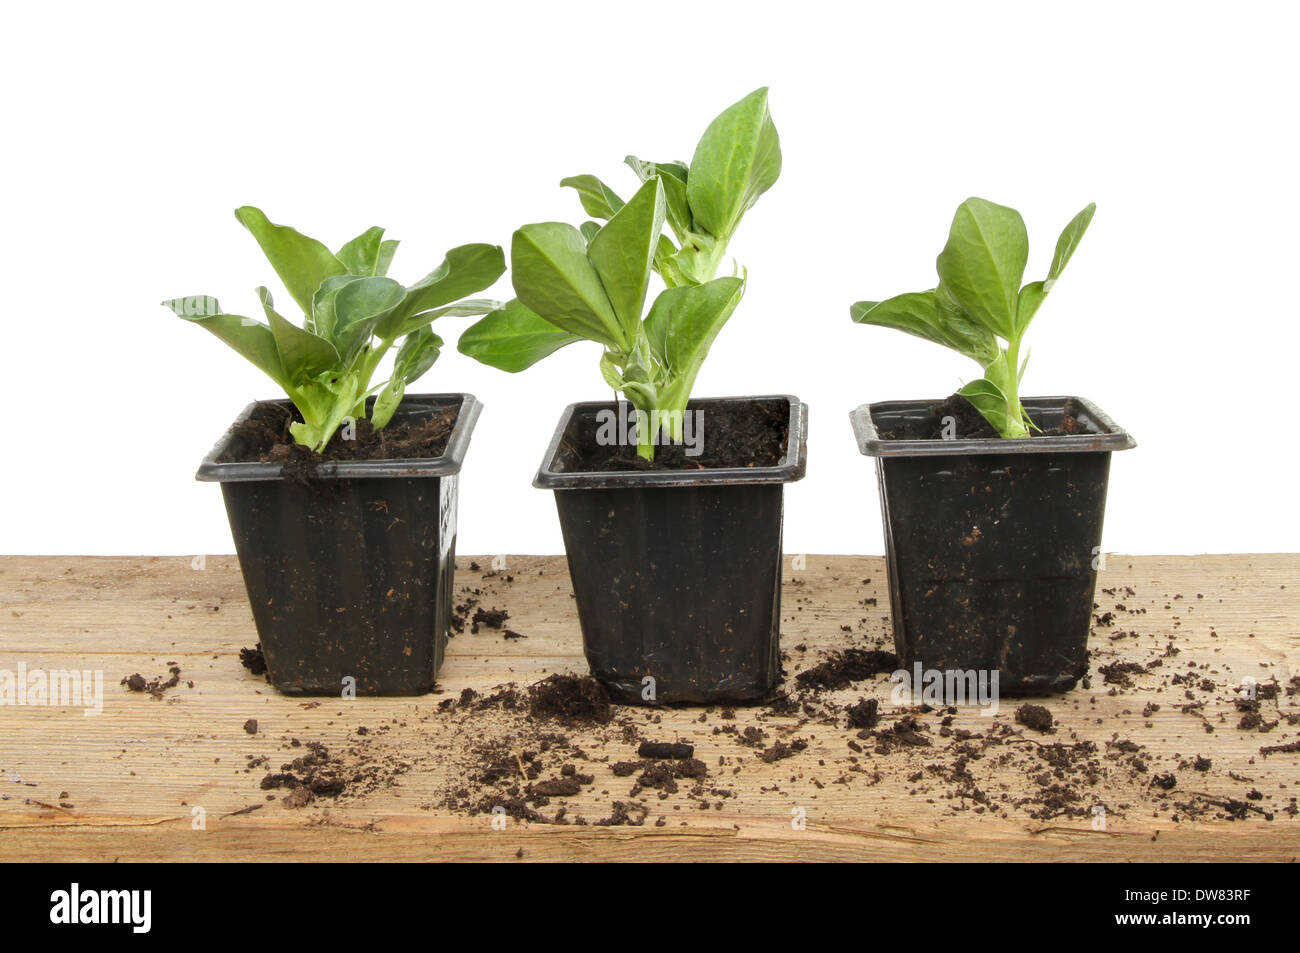 Broad Bean Seedlings In Plastic Pots On A Potting Bench Against A White  Background